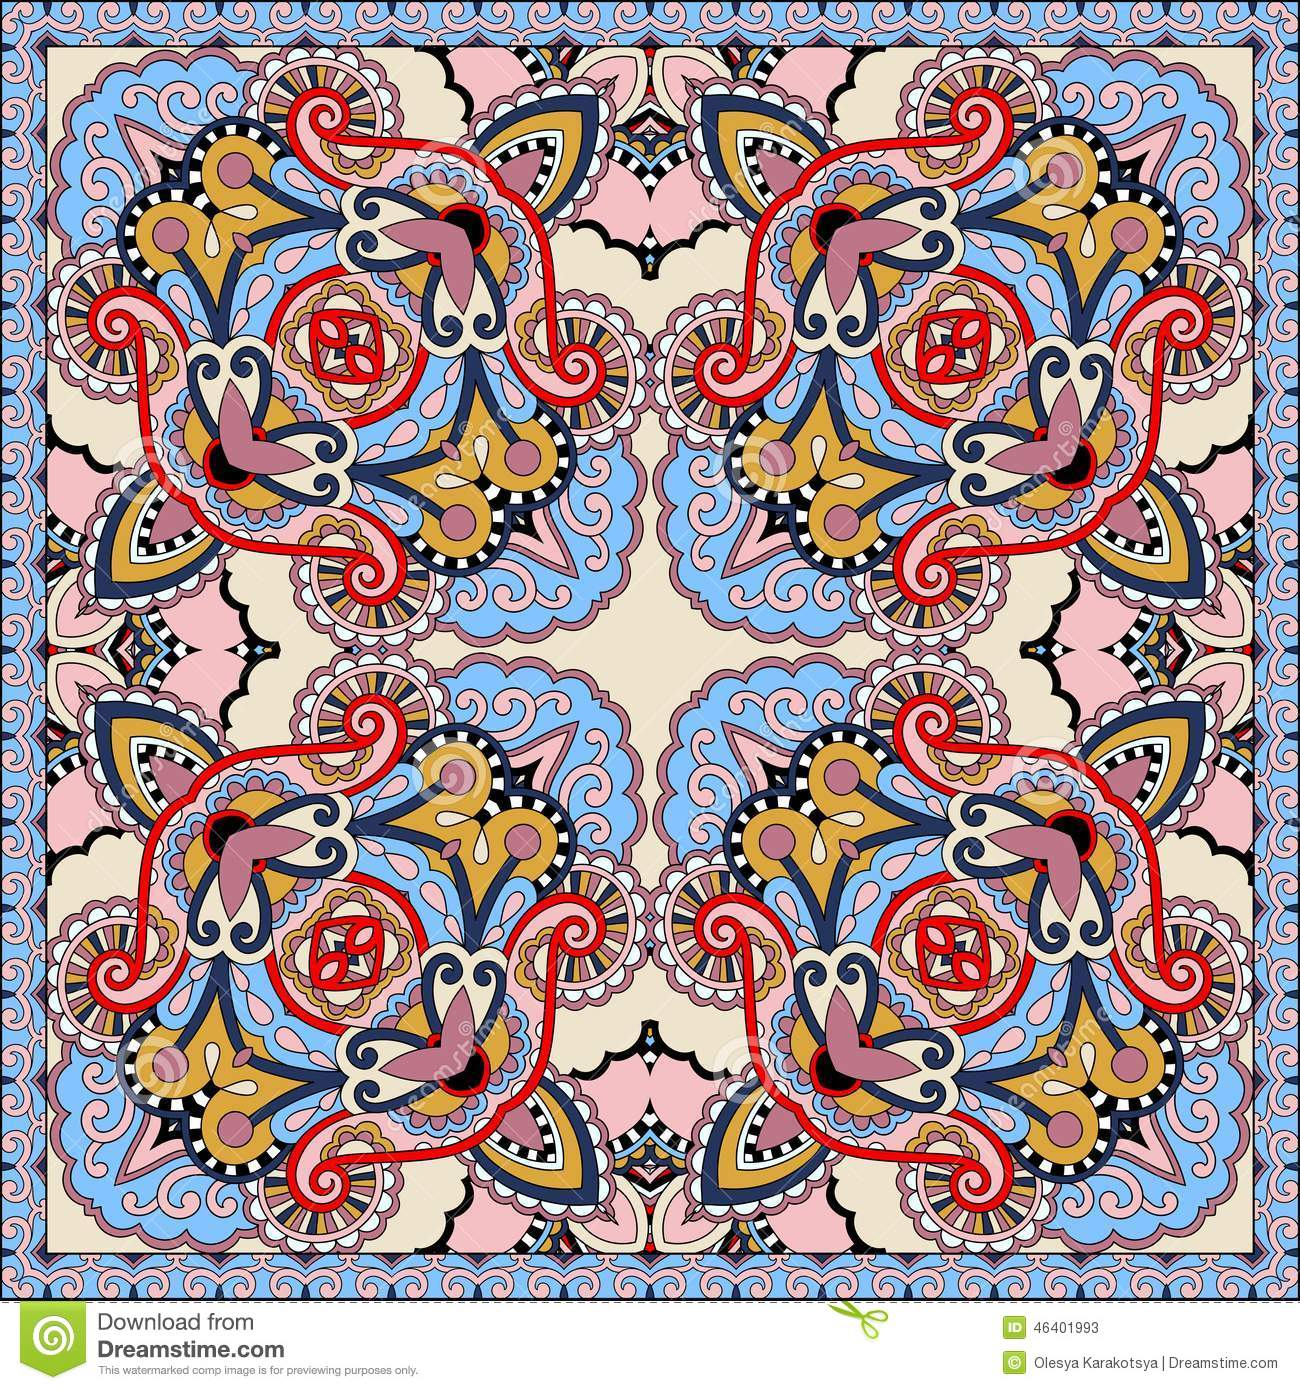 Japanese Patterns furthermore Ambra Bra Oil Push Orient Orange 0596 as well Royalty Free Stock Photo D White People Businessmen Playing Steal Bacon Metaphor Business  peting To See Who Gets Handkerchief Wins Background Image35401185 further Cowboy Bandana Red 22296 likewise 205. on design with handkerchief